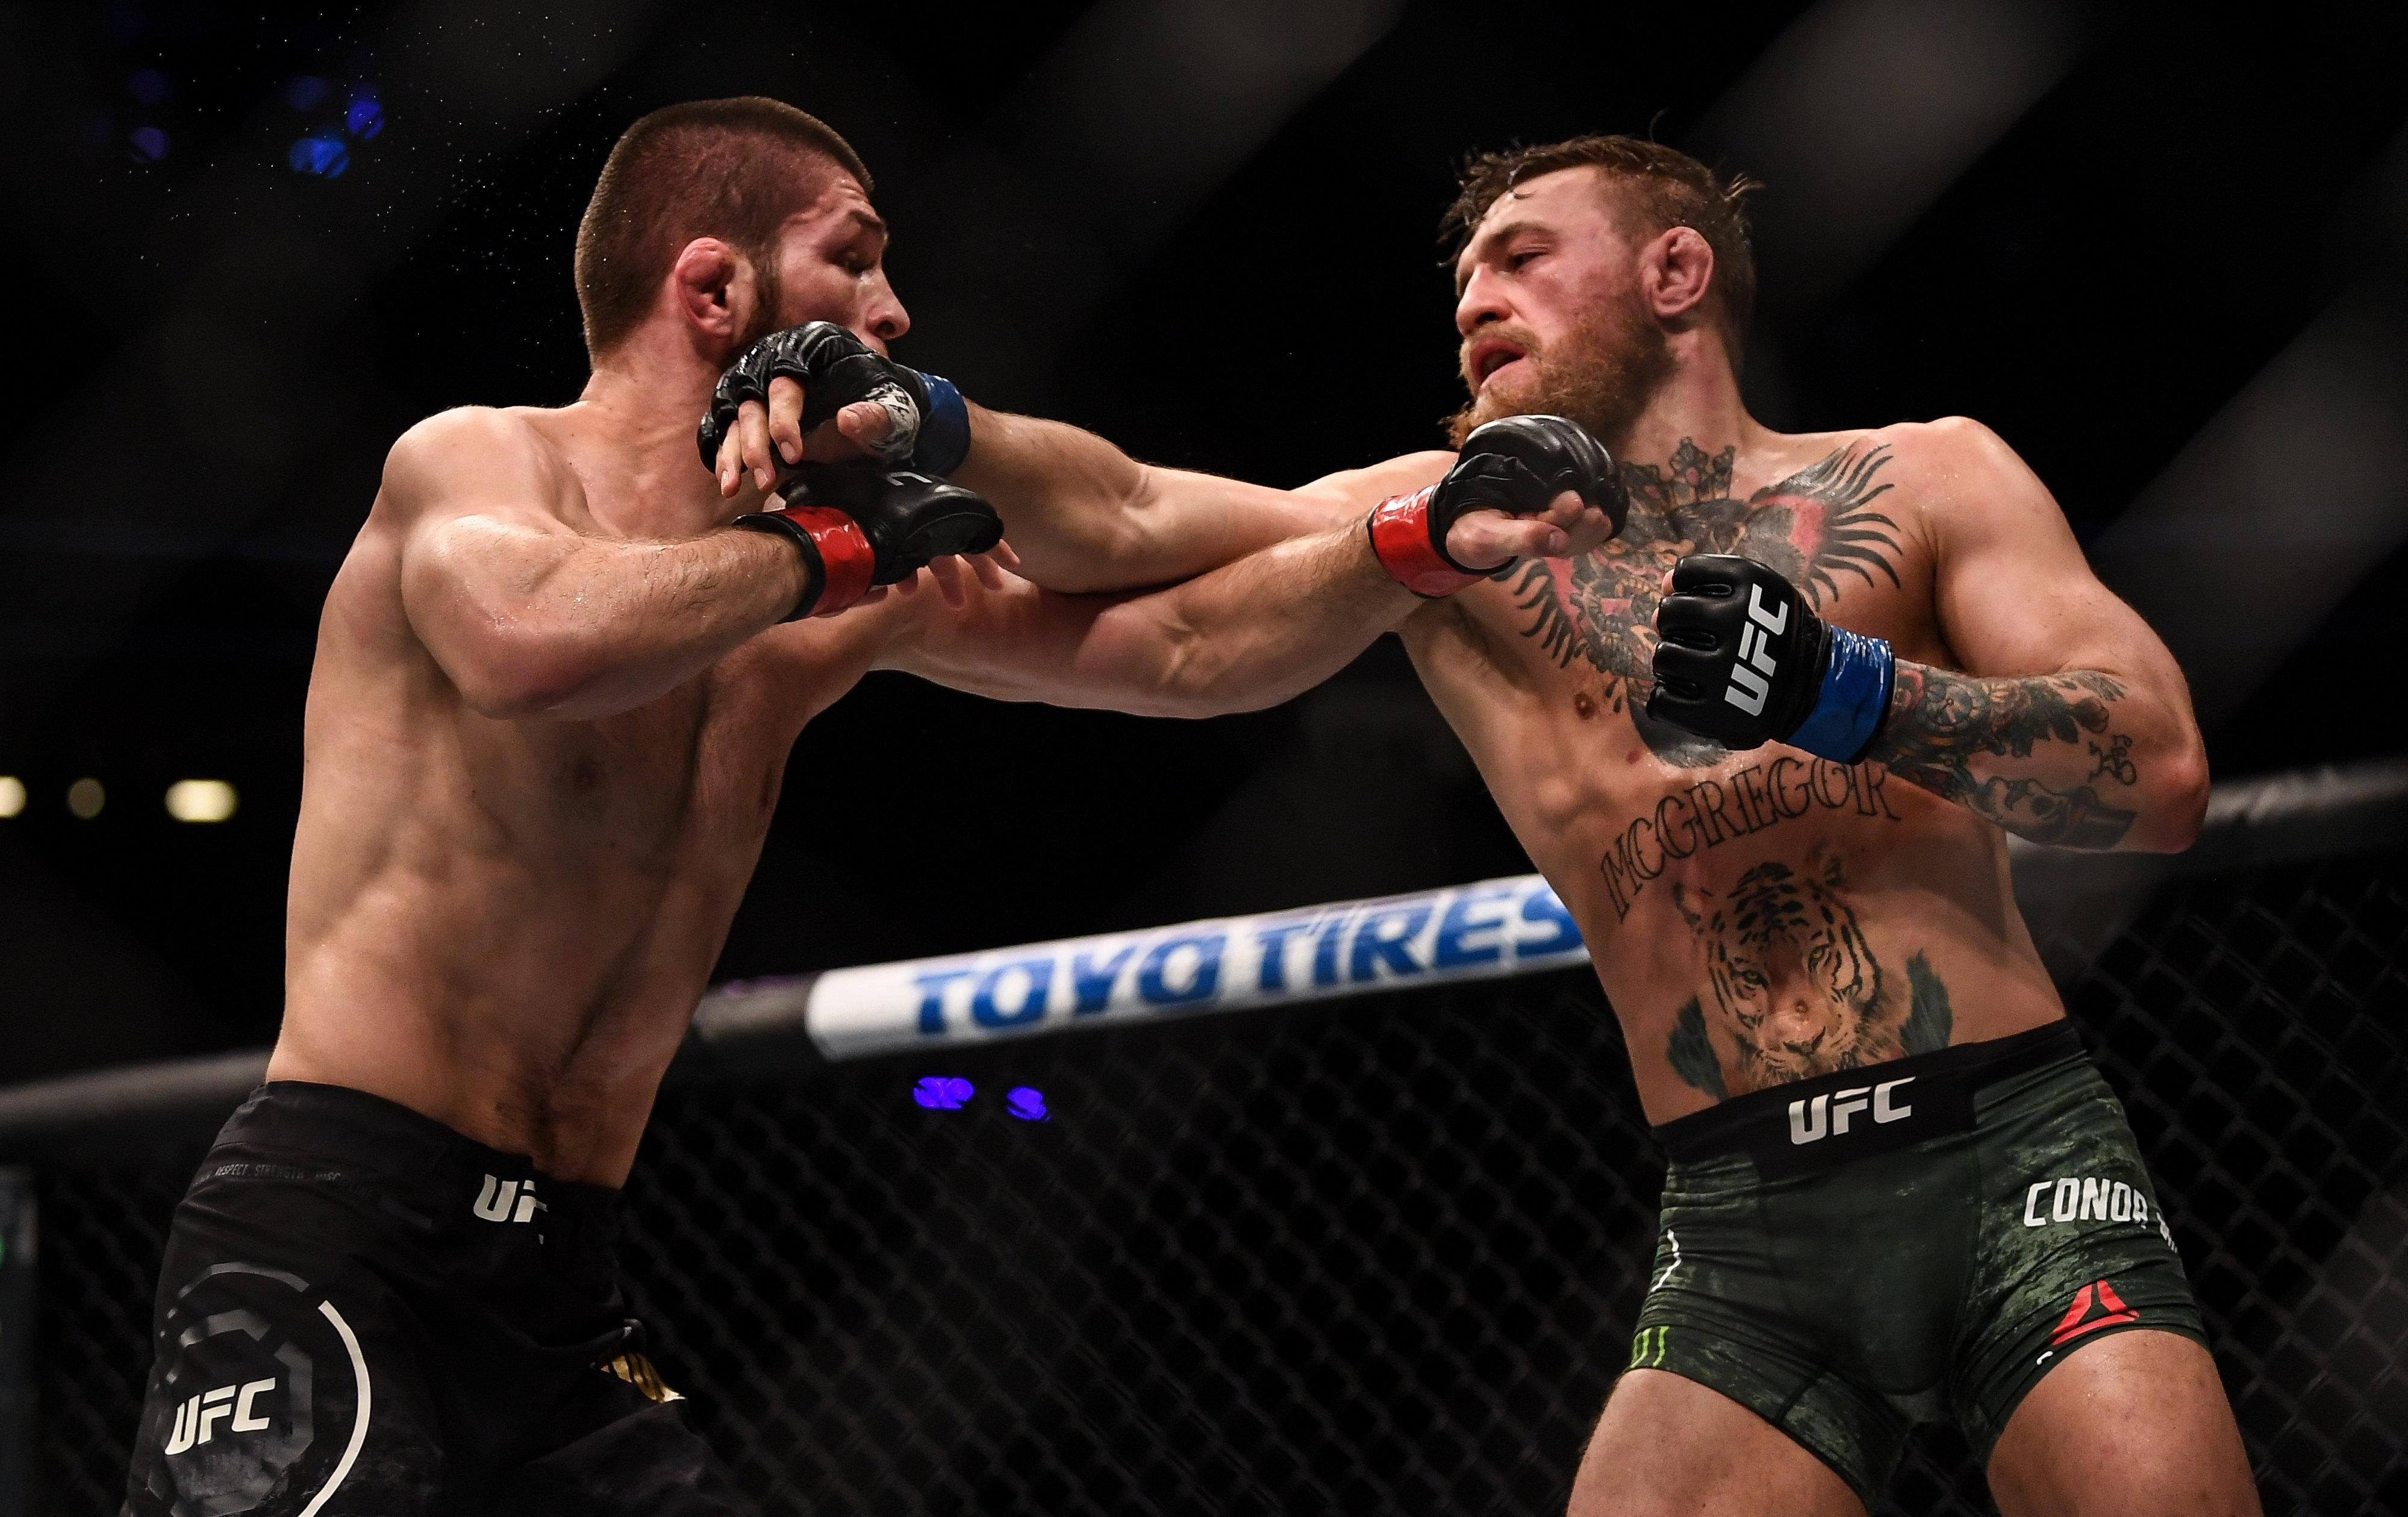 Nurmagomedov dropped McGregor with a right hand in round two of their bout - before ending the fight via submission in the fourth